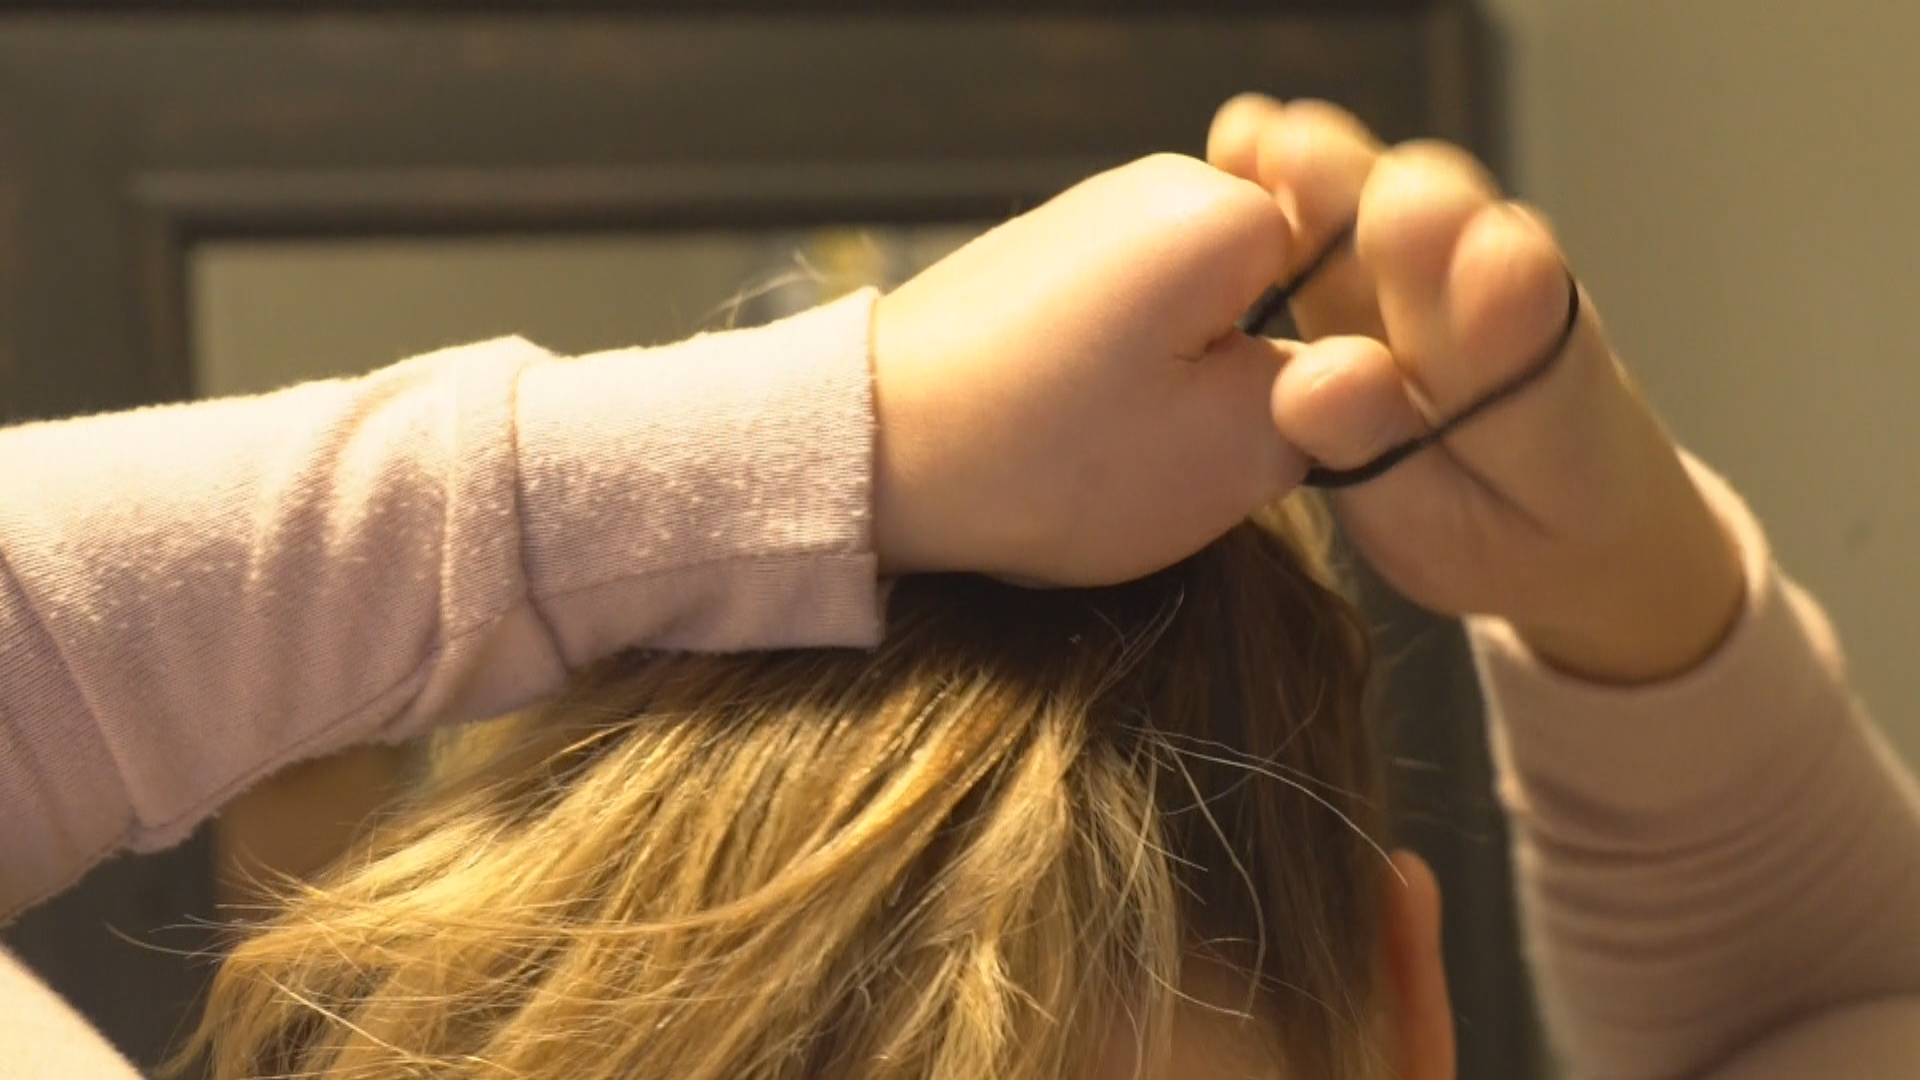 Elaine Dodge-Lynch demonstrates how she learned to put her hair up. (Gary Quigley/CBC)